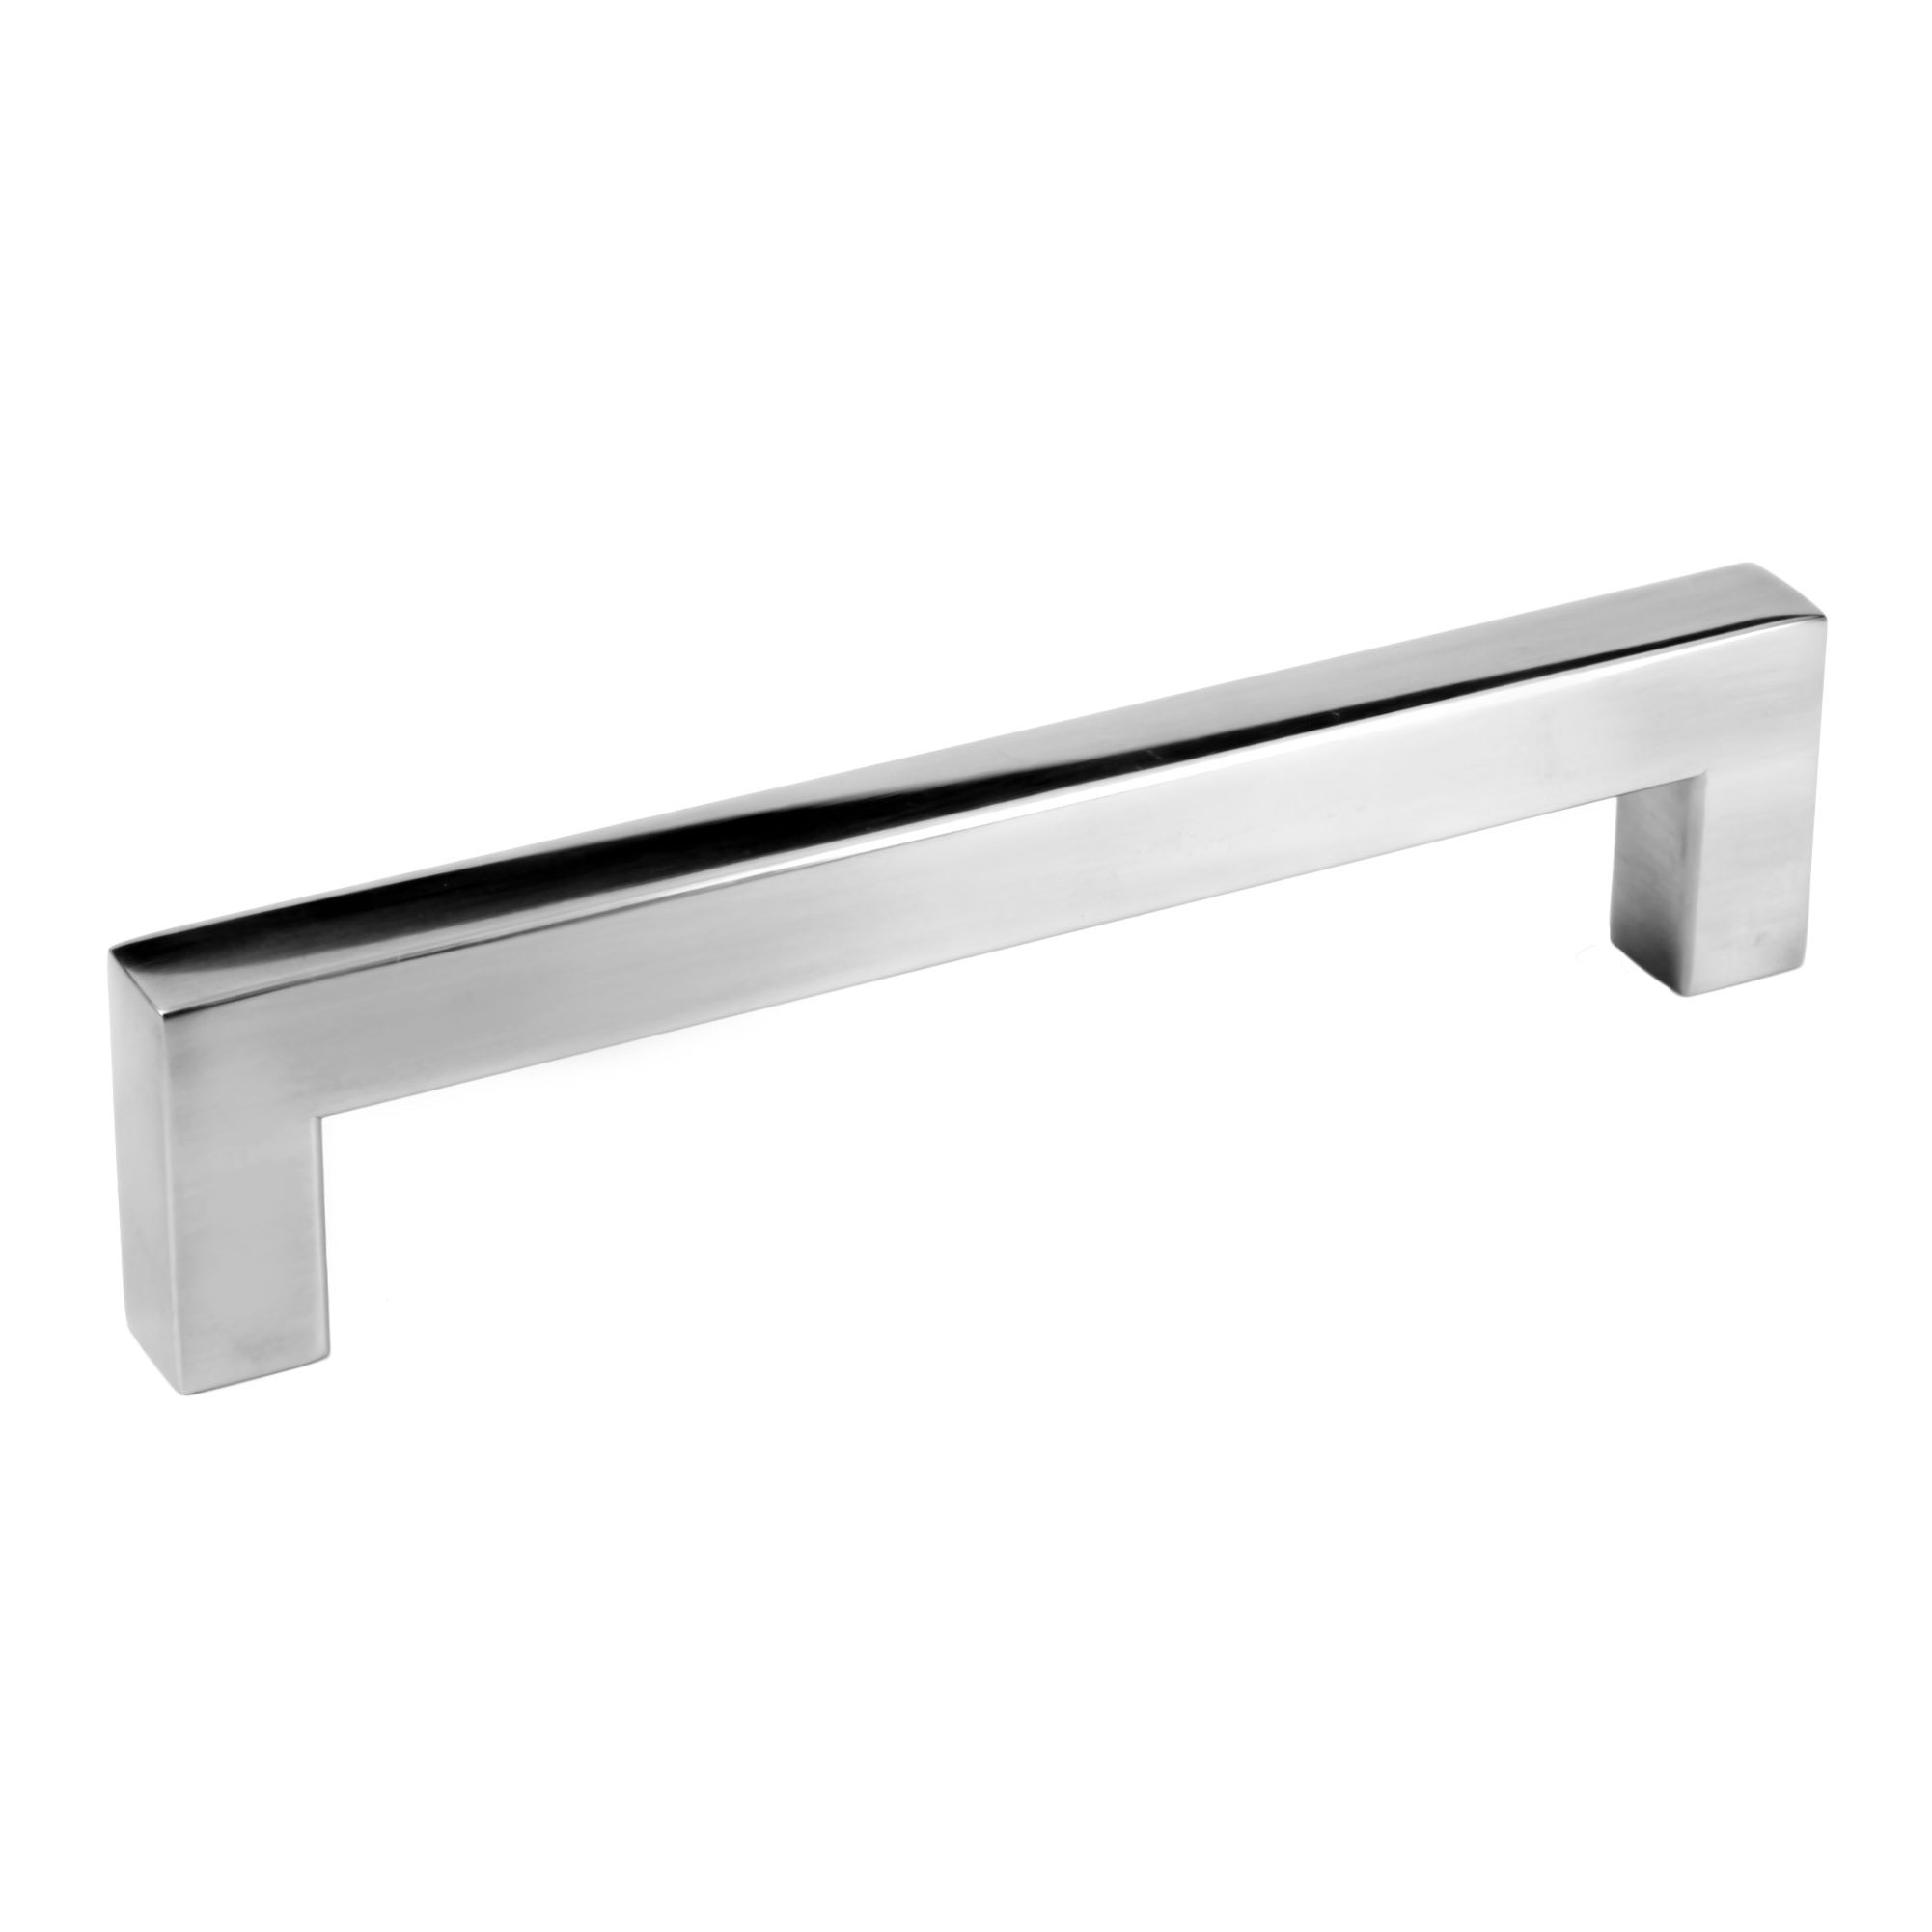 5'' Square Bar Pull Kitchen Cabinet Hardware Stainless Steel 12mm Handles (5'' Polished Chrome, 25 Pack)